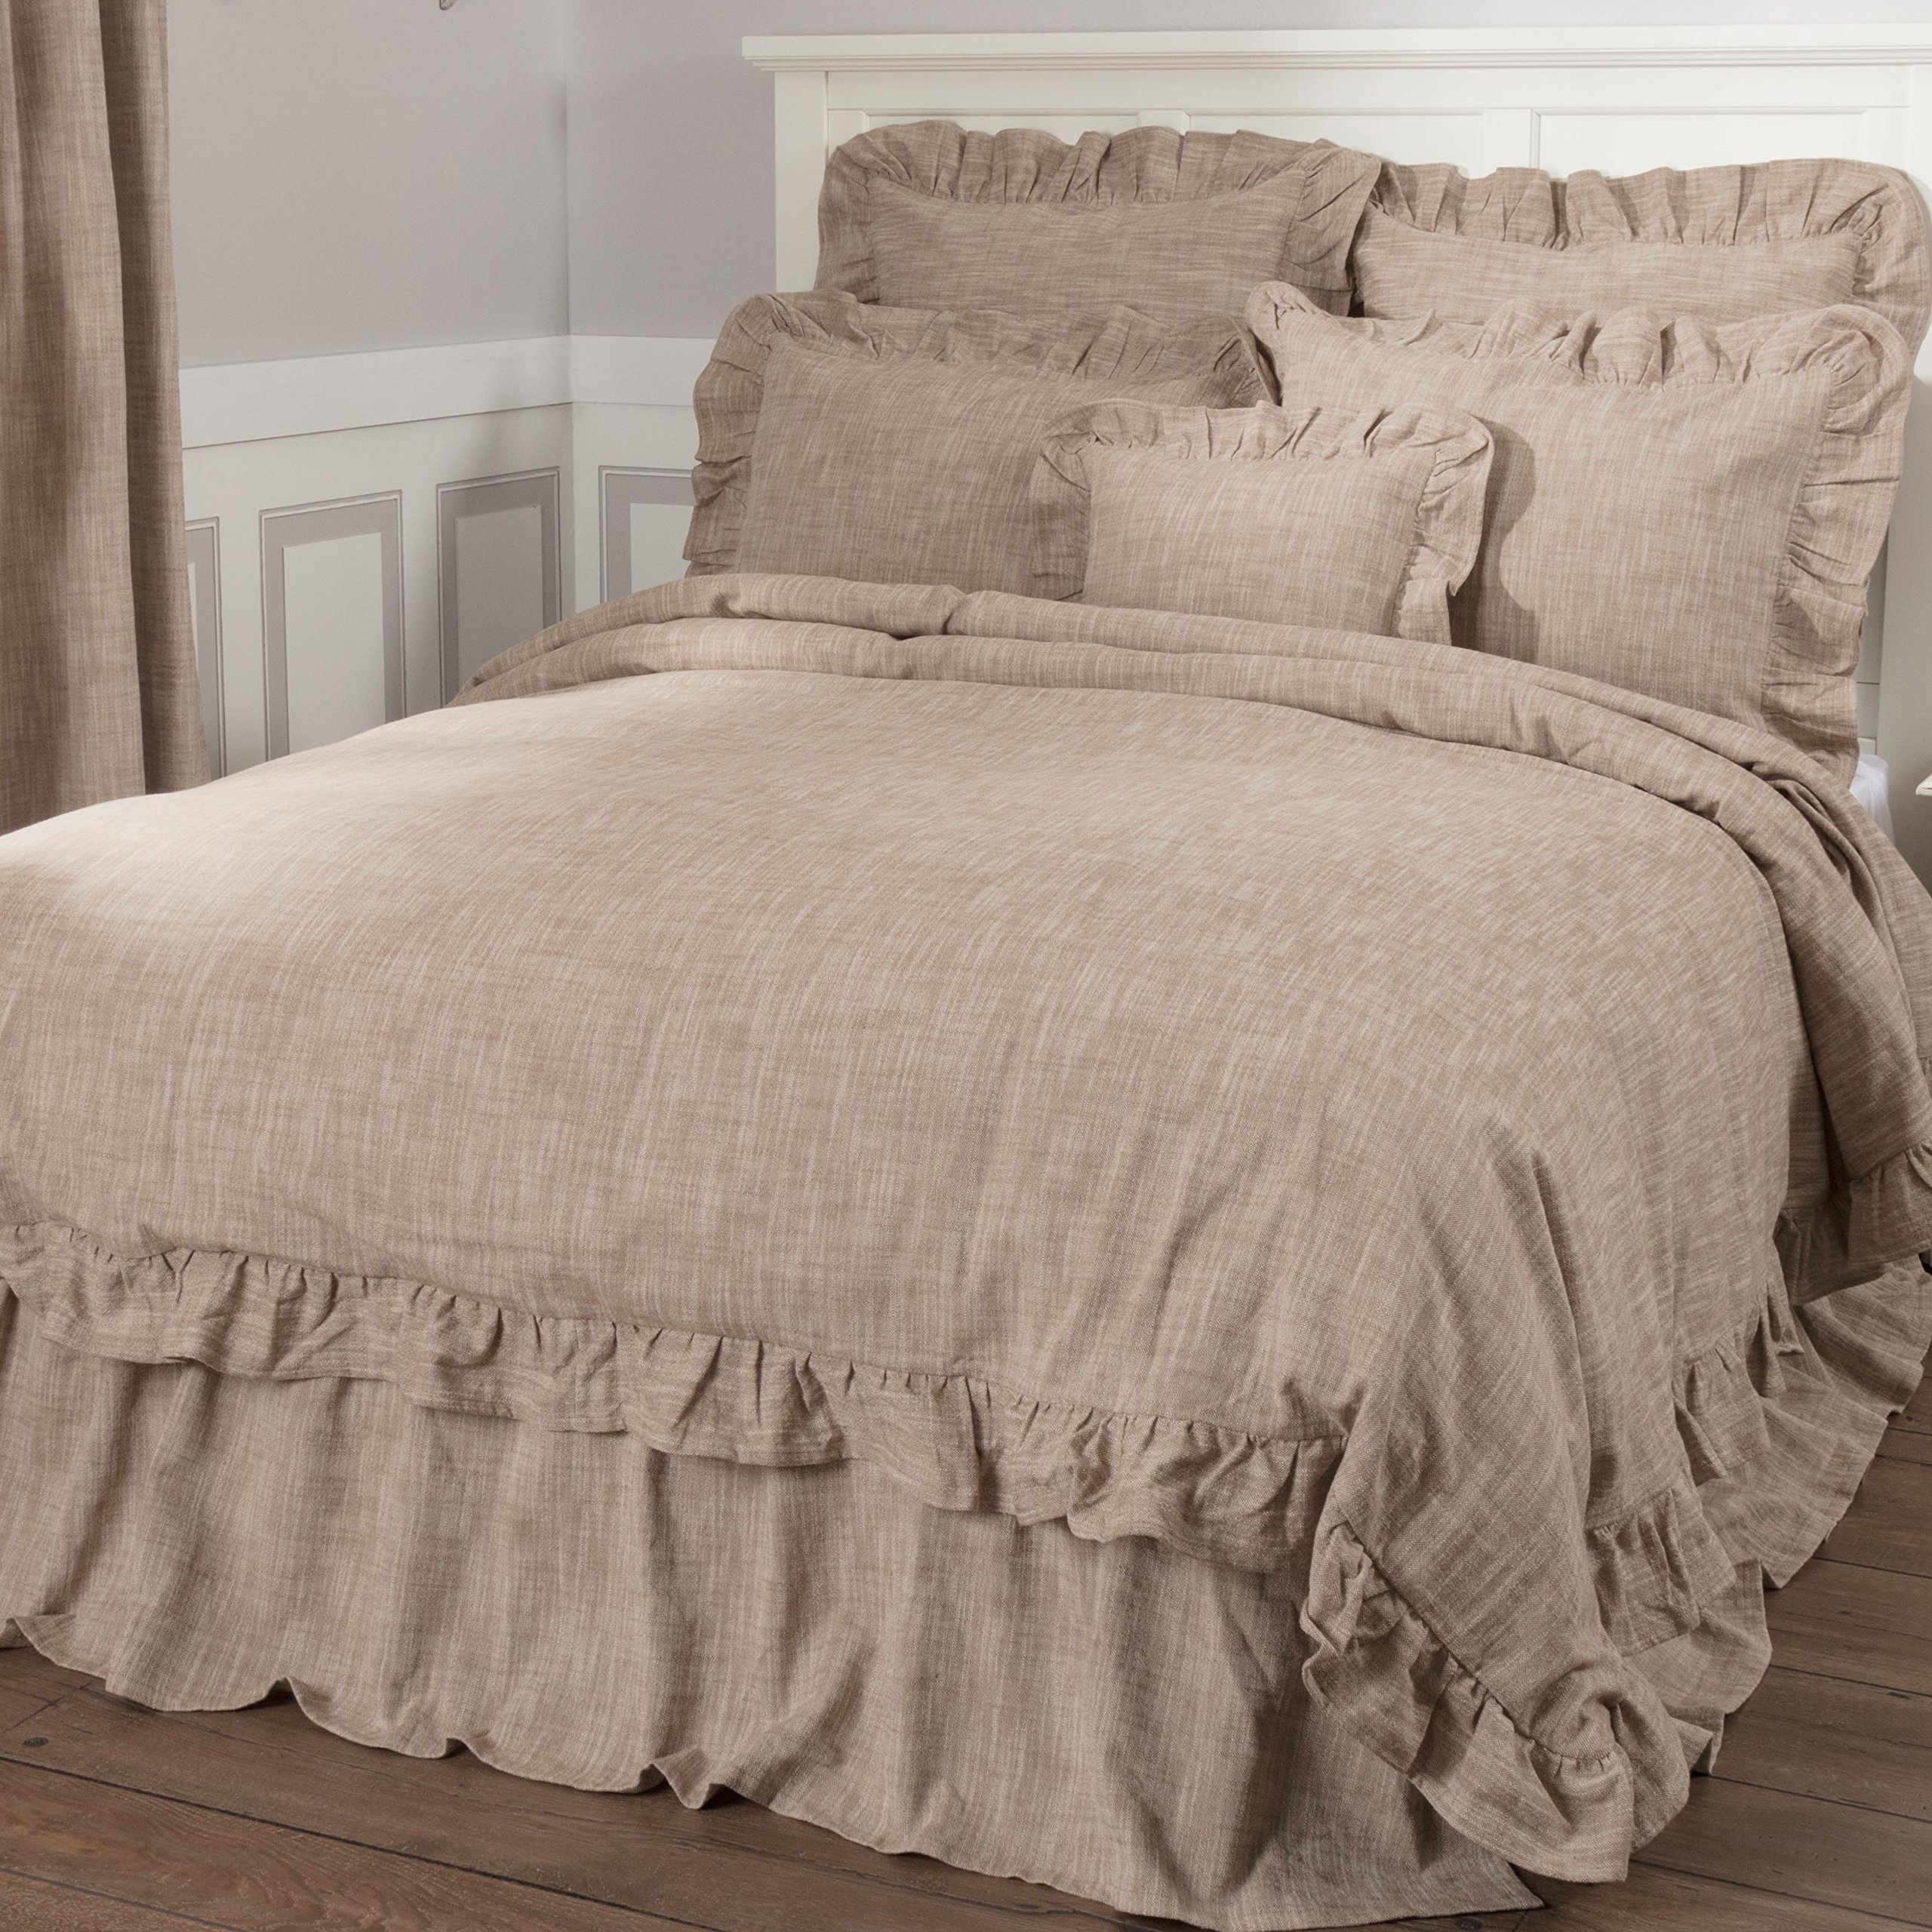 Piper Classics Ashley Taupe Ruffled Duvet Cover, Twin Size 92x72, Farmhouse Style Bedding, Dark Beige Comforter Cover